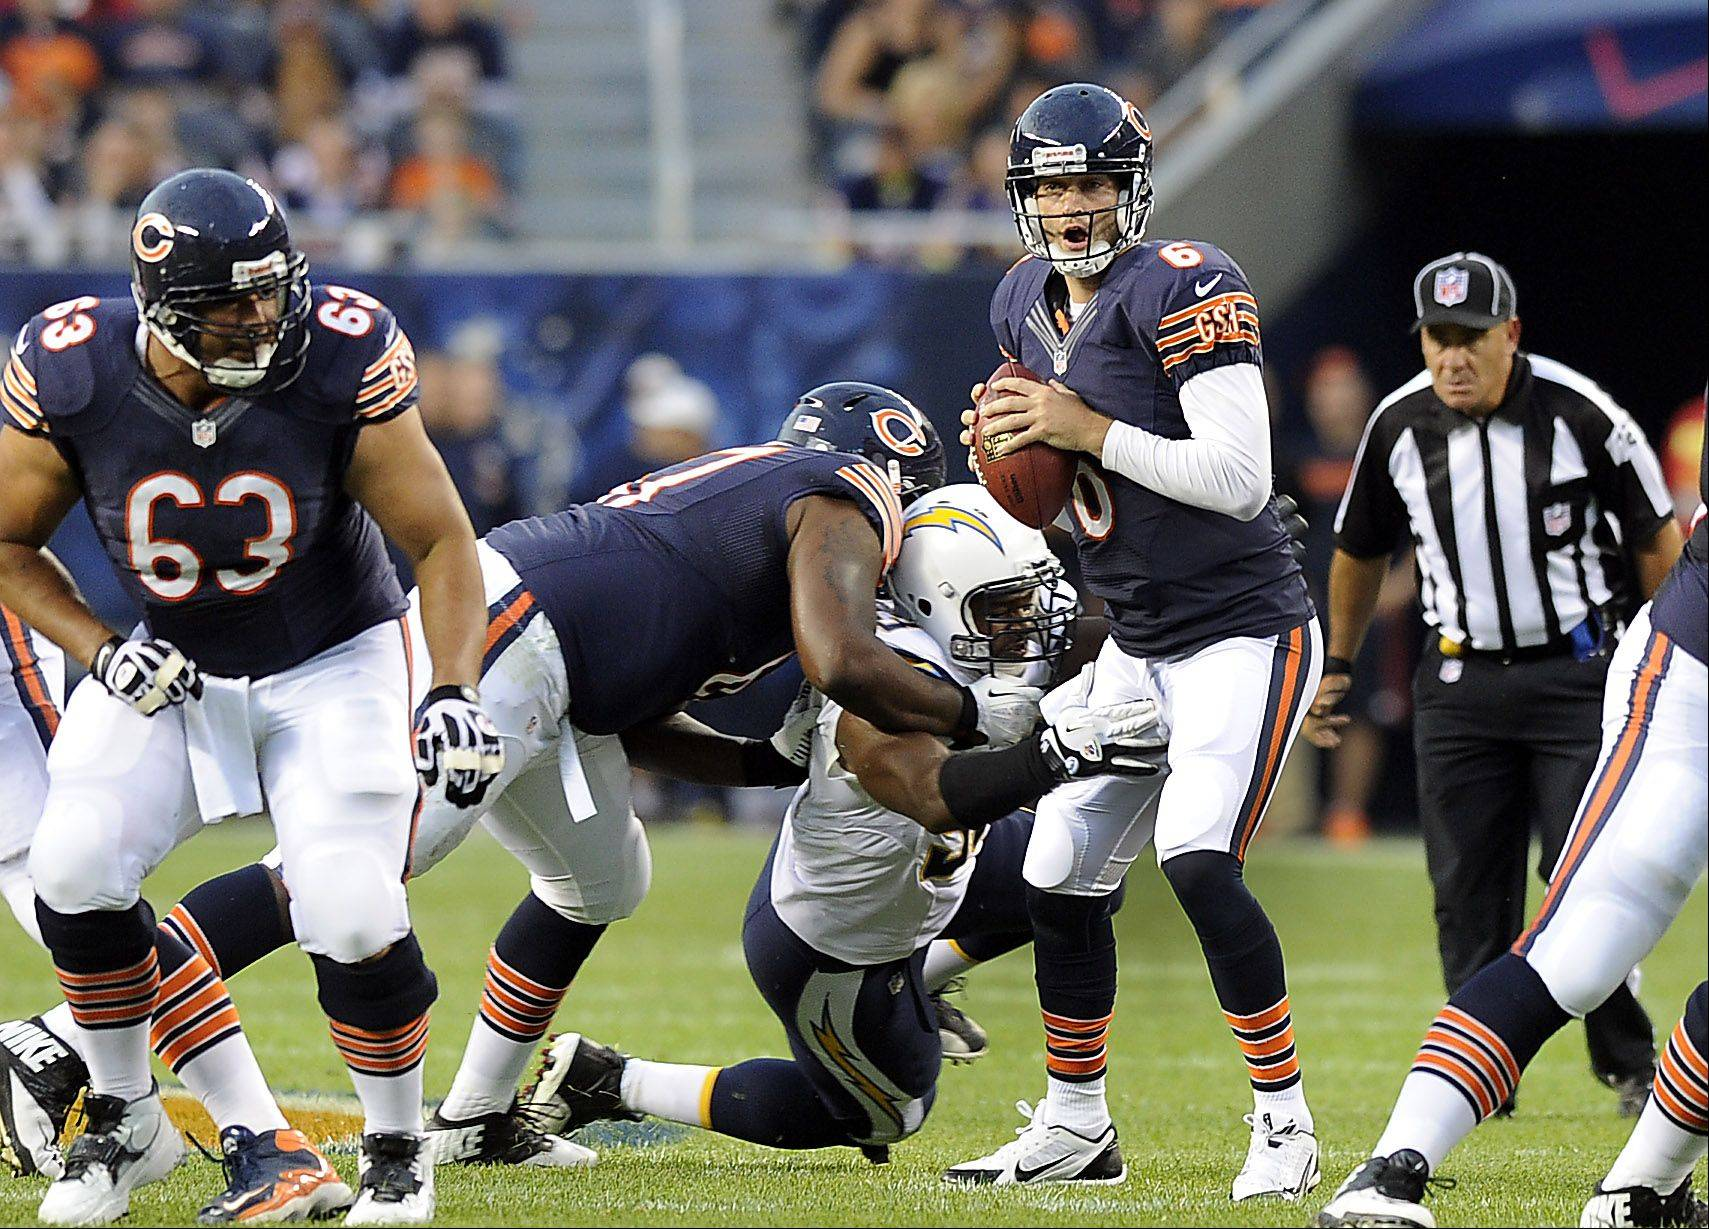 Bears quarterback Jay Cutler understands the new offense still will require some time to really get going at full speed.